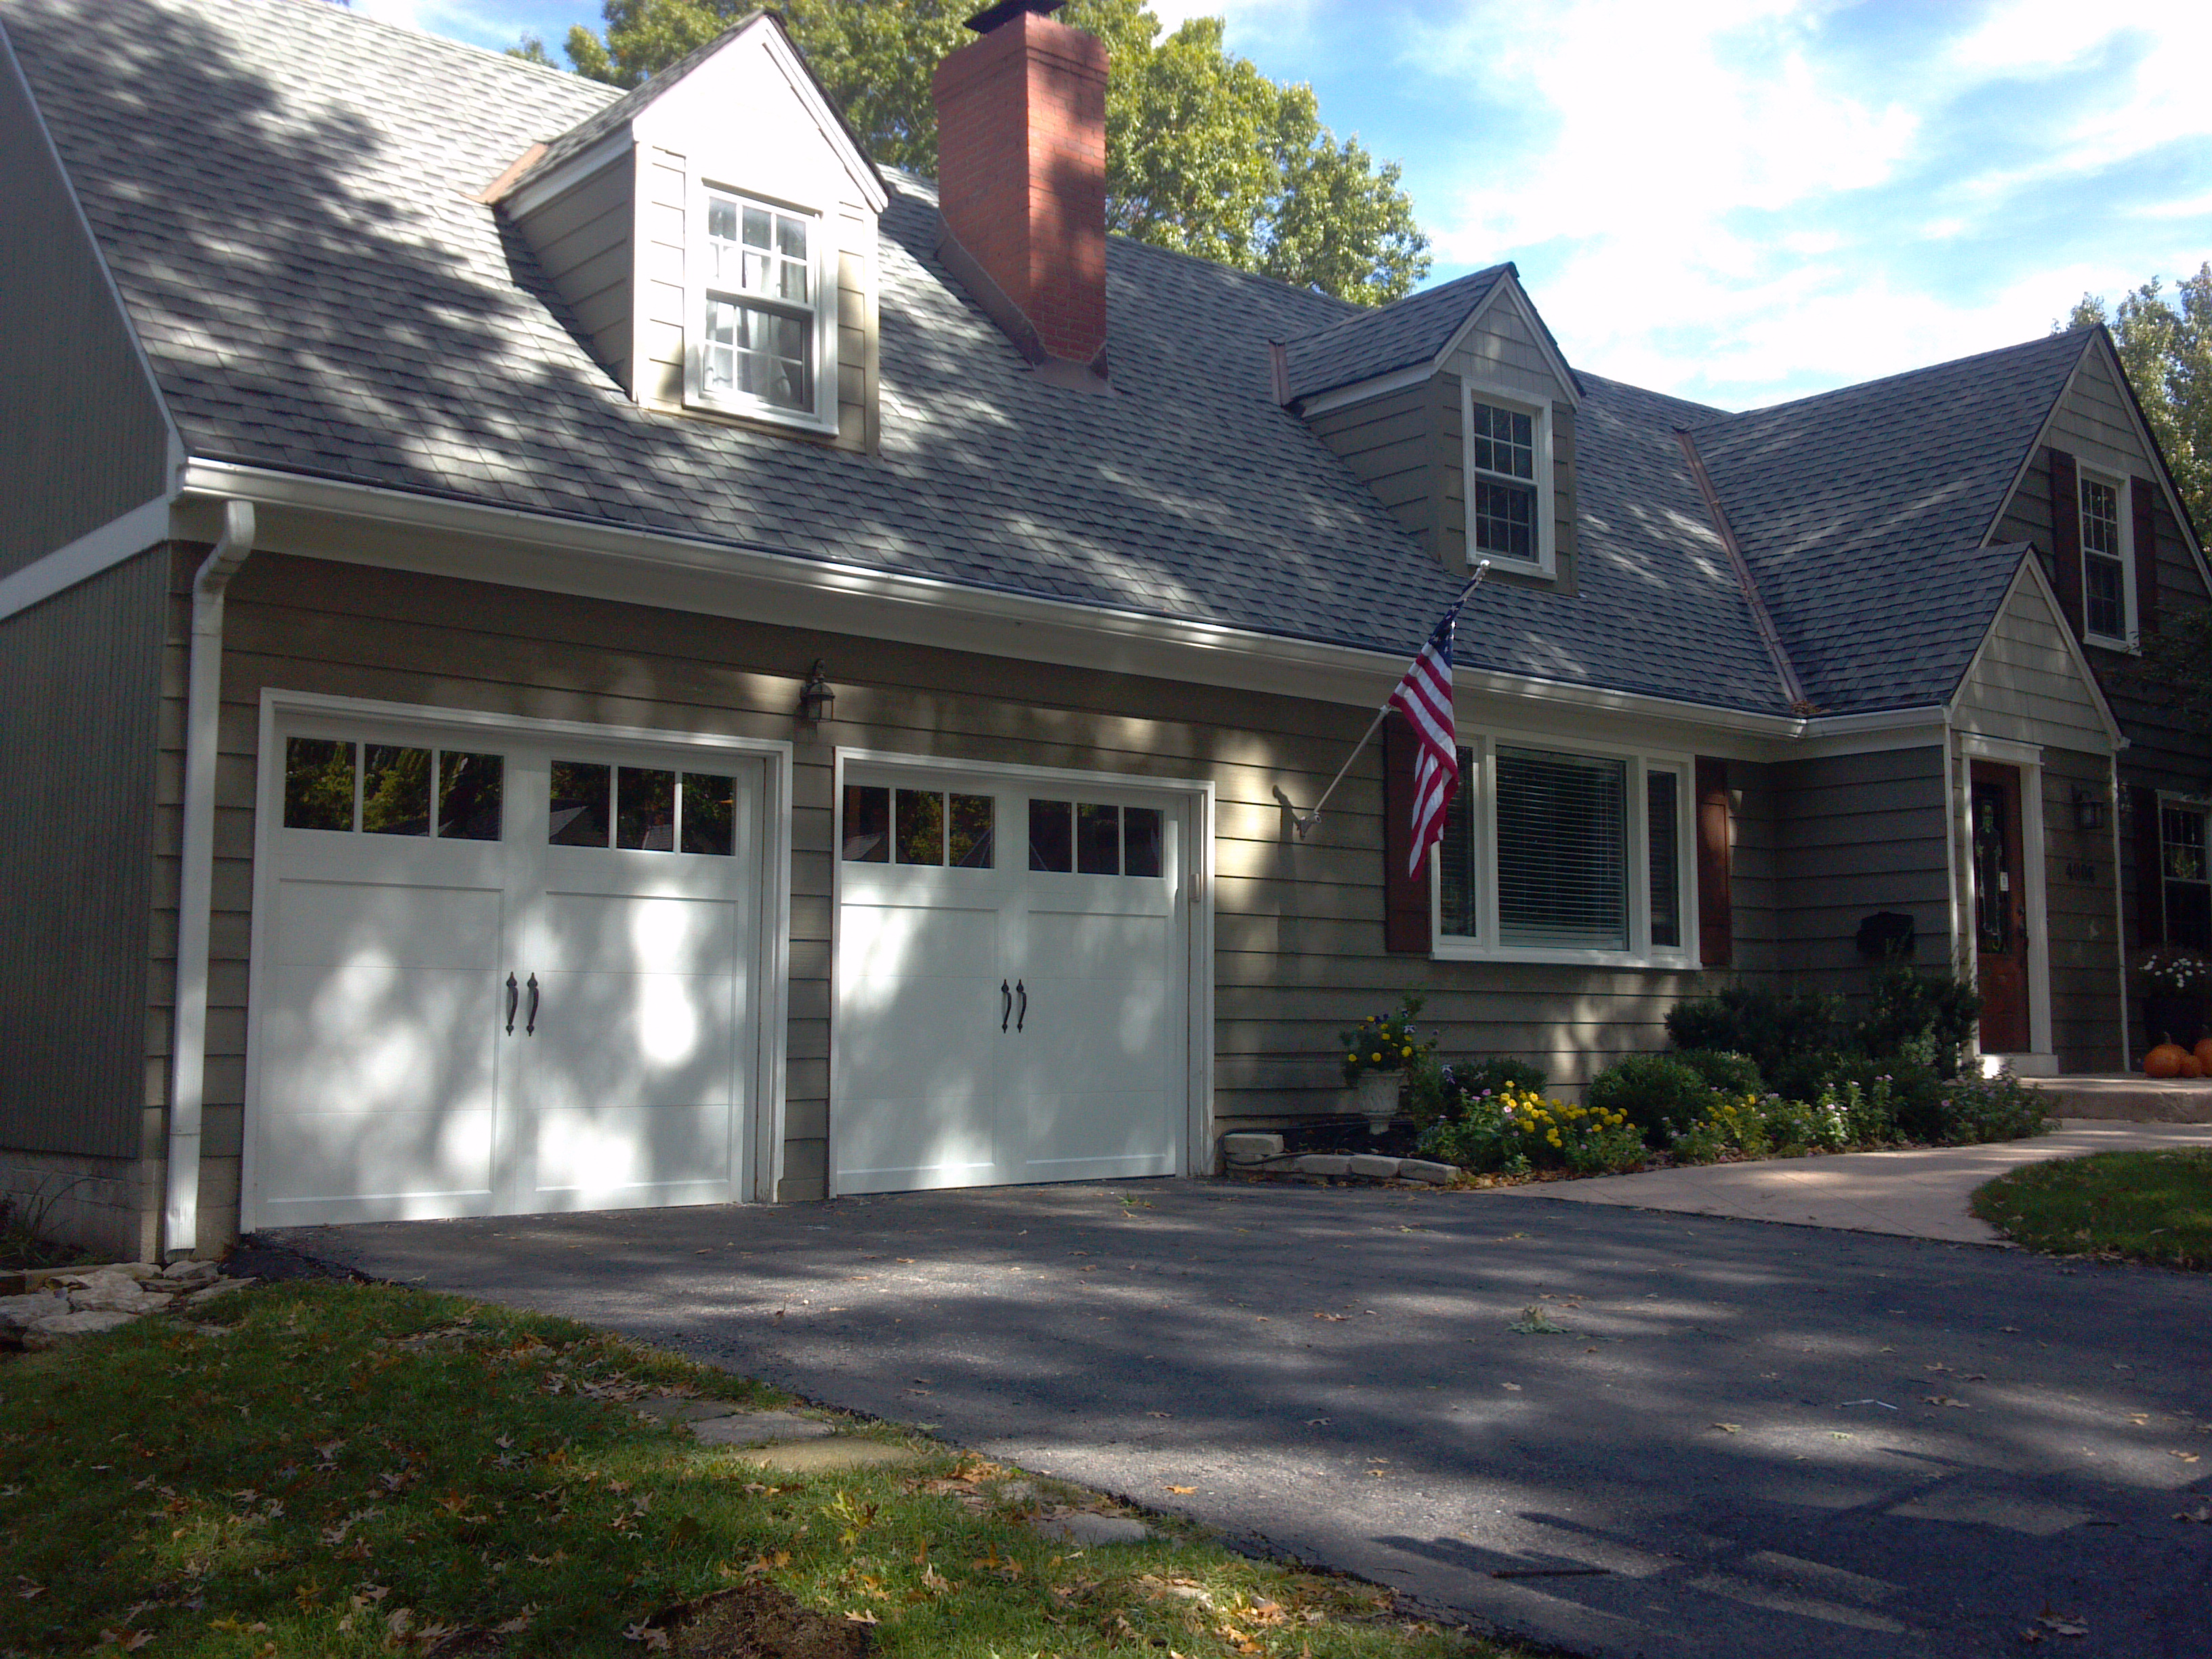 Cloplay Garage Doors | Garage Door Wholesale Distributors | Clopay Troy Ohio